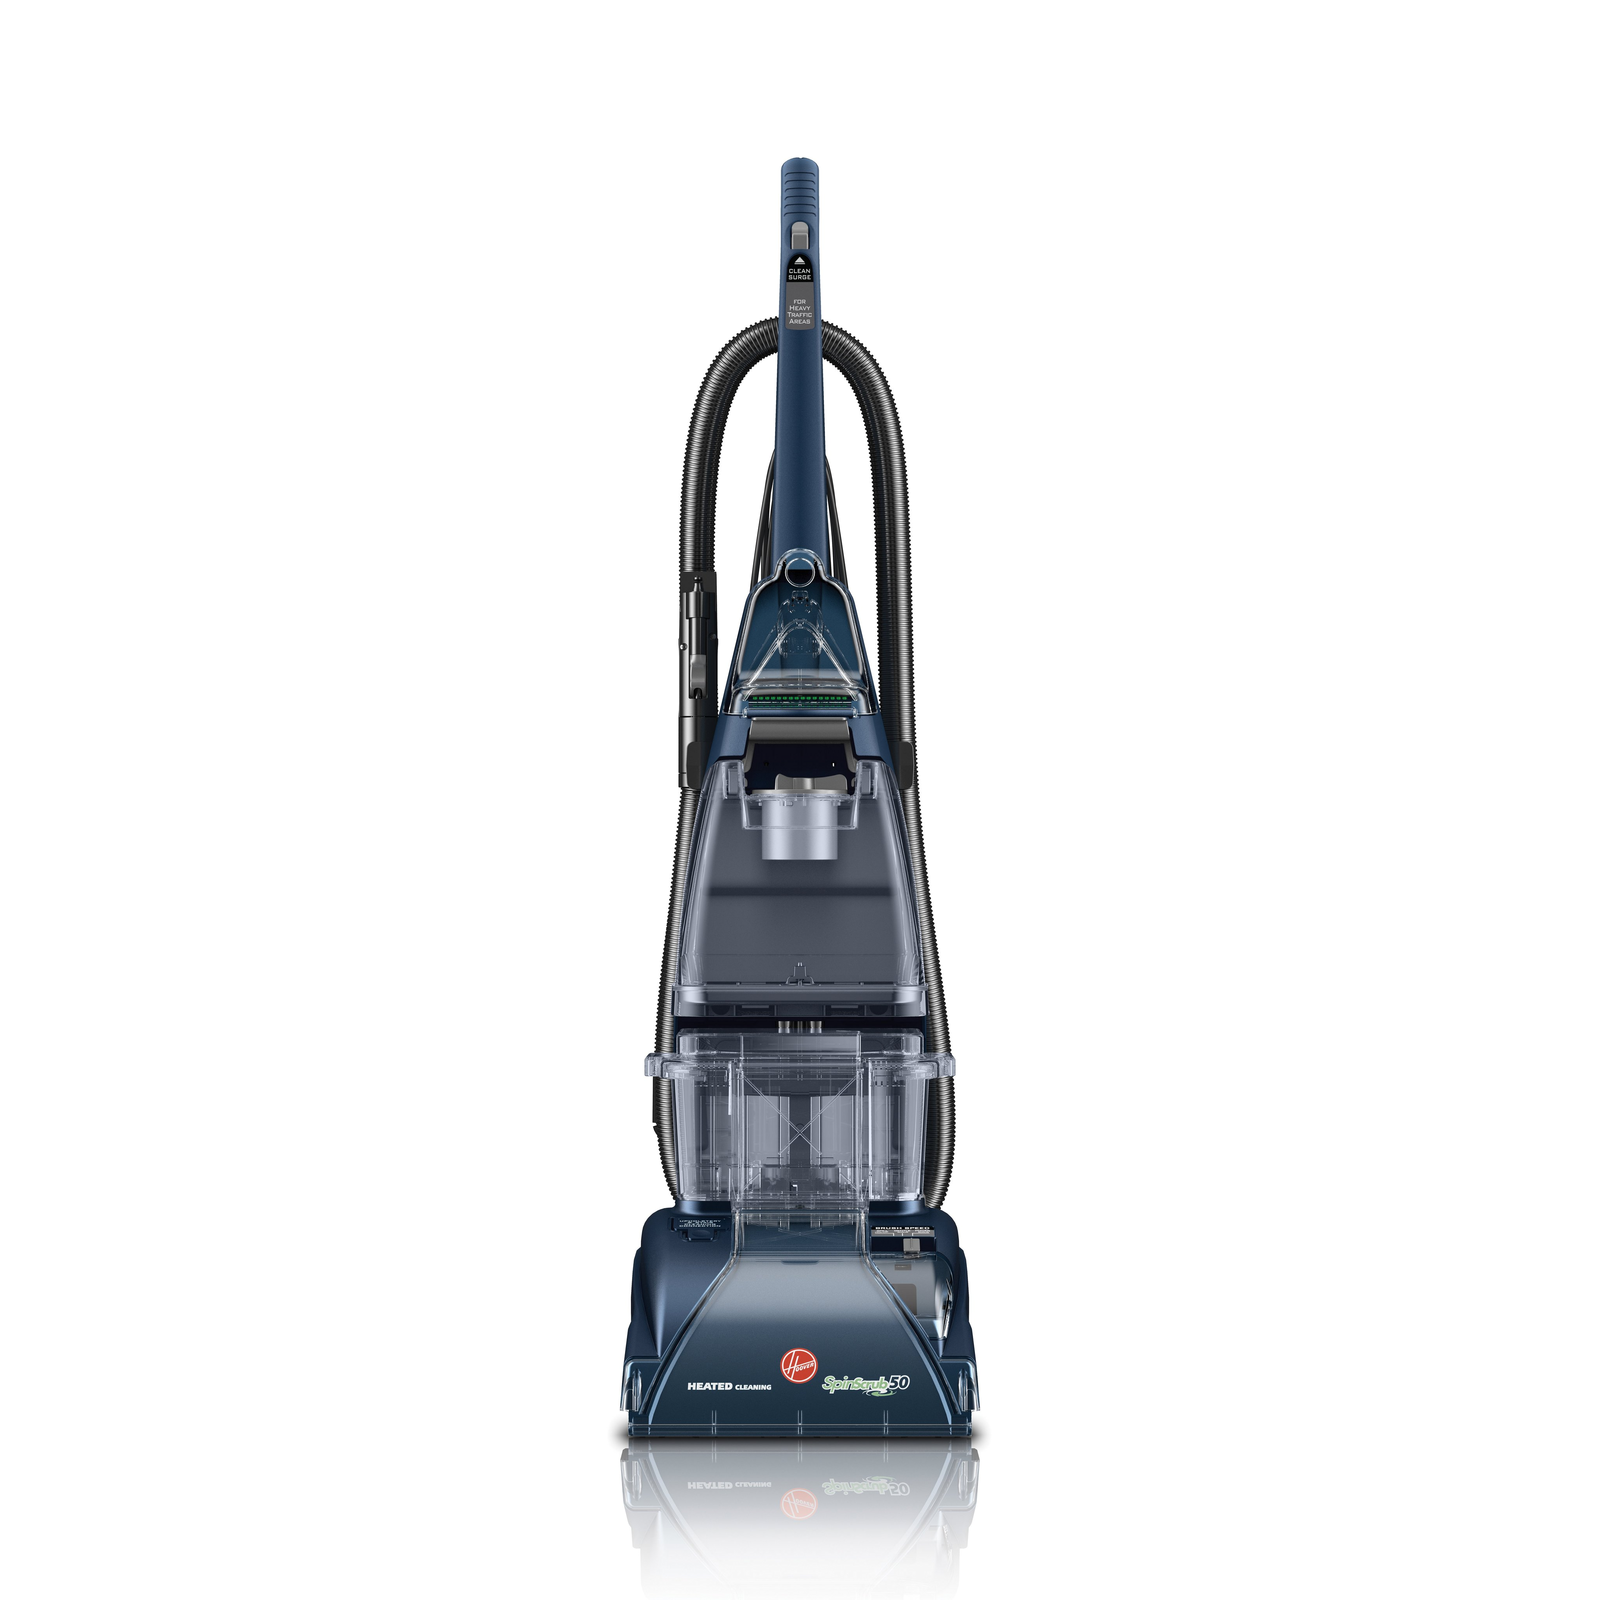 Hoover STEAMVAC WITH CLEANSURGE CARPET CLEANER